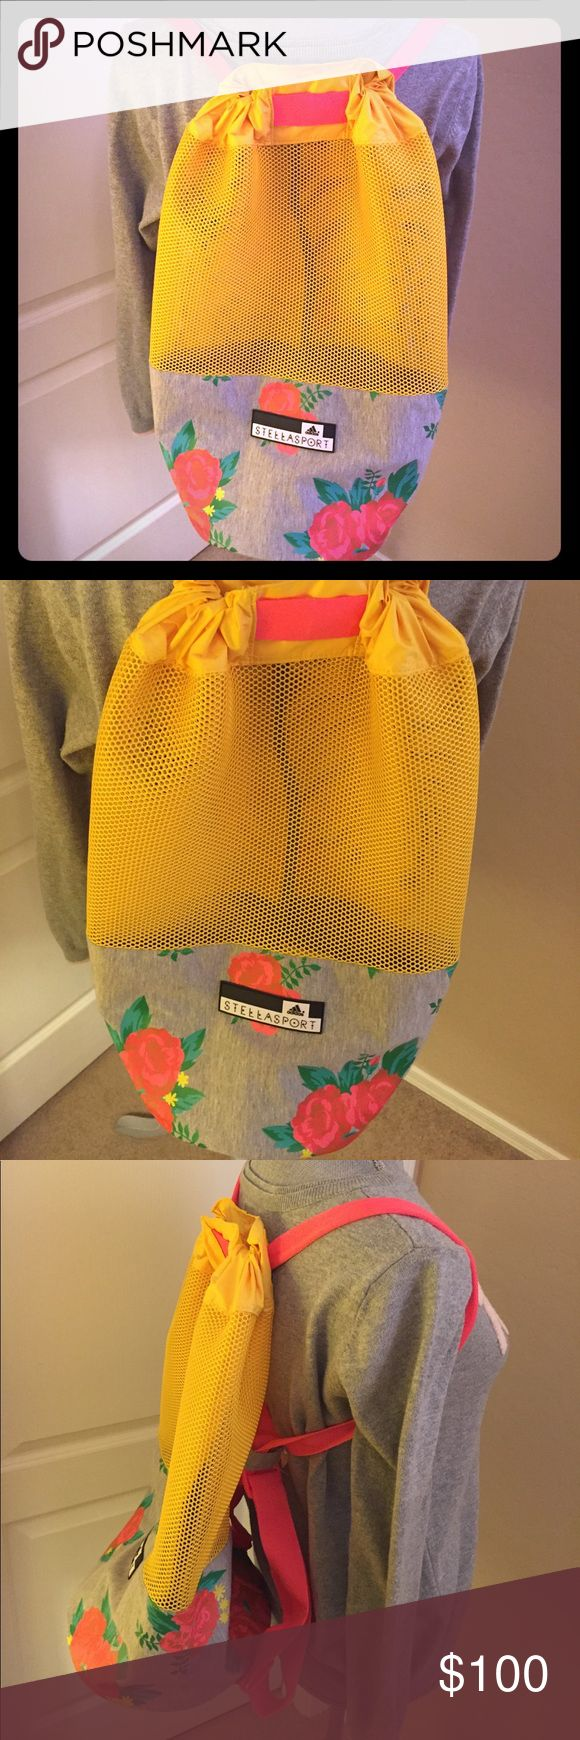 🆕 Adidas by Stella McCartney Backpack 🎒A Very Rare Find! Authentic Adidas by Stella McCartney Roses Printed Jersey & Mesh Backpack. Black & White Adidas Stellasport Logo Tab. Solid Yellow Drawstring Top. Bright Yellow Mesh Body. Floral Print Bottom has a Heather Grey Background with Appliqued Bright Red & Coral Roses, Green Leaves, & Yellow Daisies. Bright Orange/H Grey Adjustable Straps. Outer Shell: 60% Cotton/40% Polyester. Inner Lining: 100% Polyurethane. Excellent Condition. No…